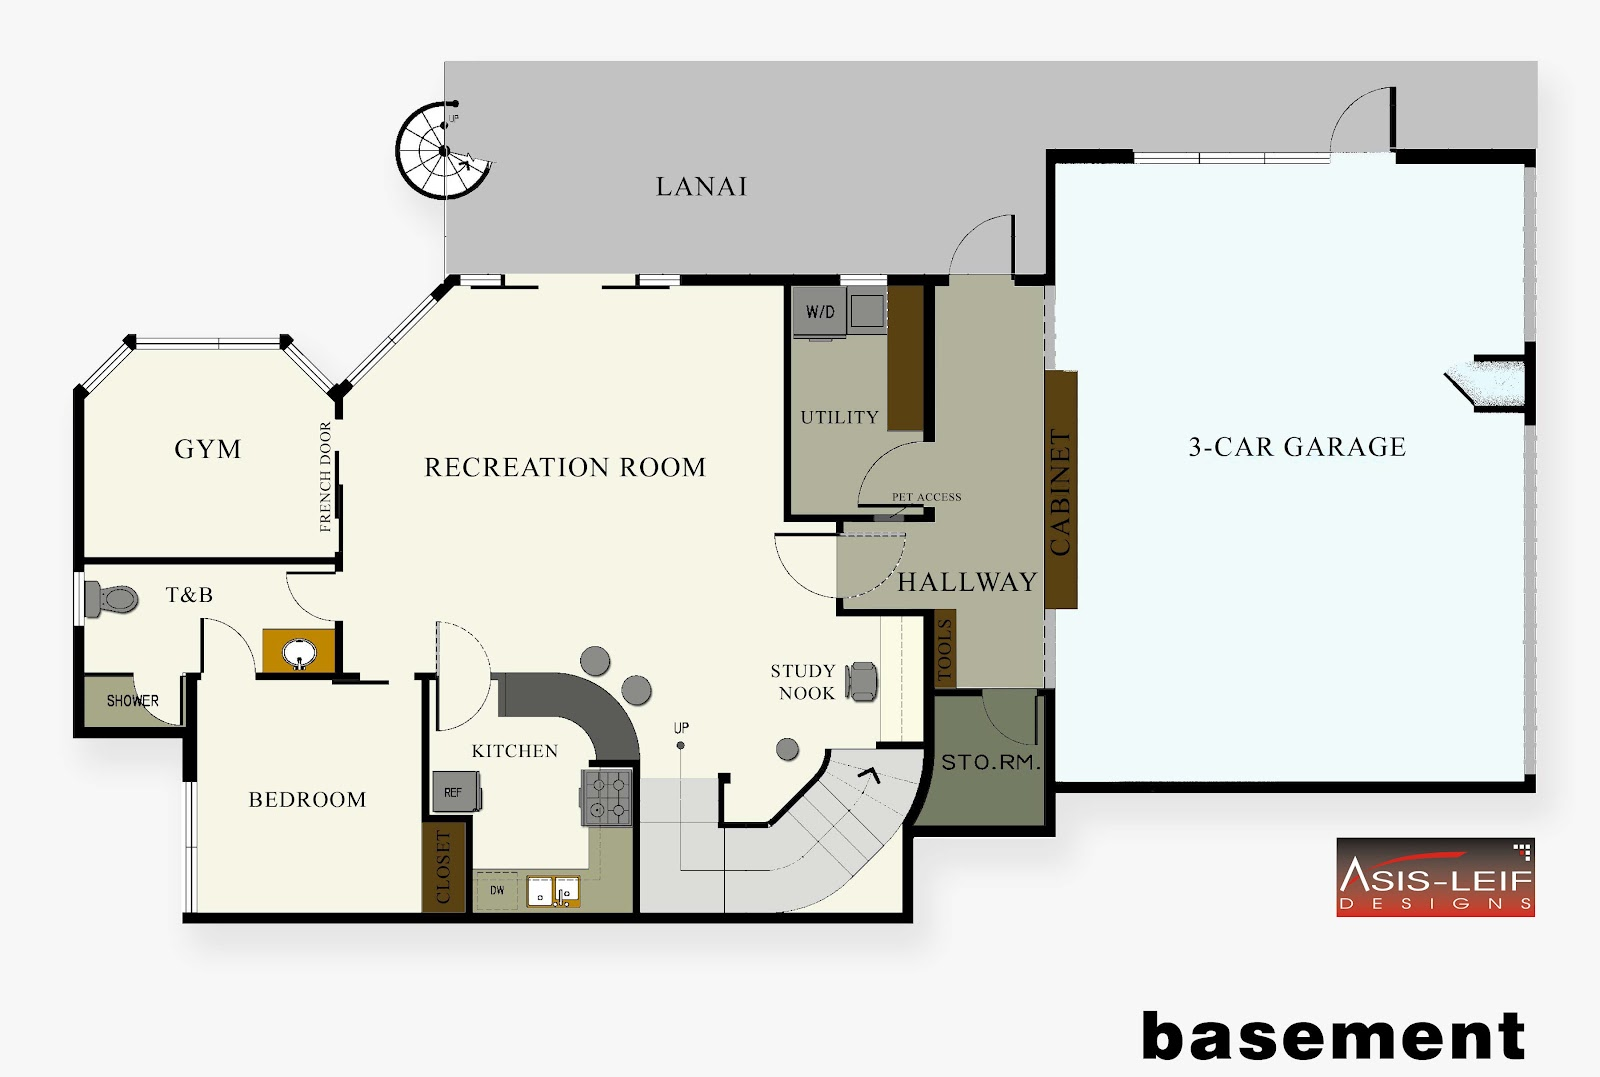 Basement floor plans ideas house plans 1849 House plans with basement